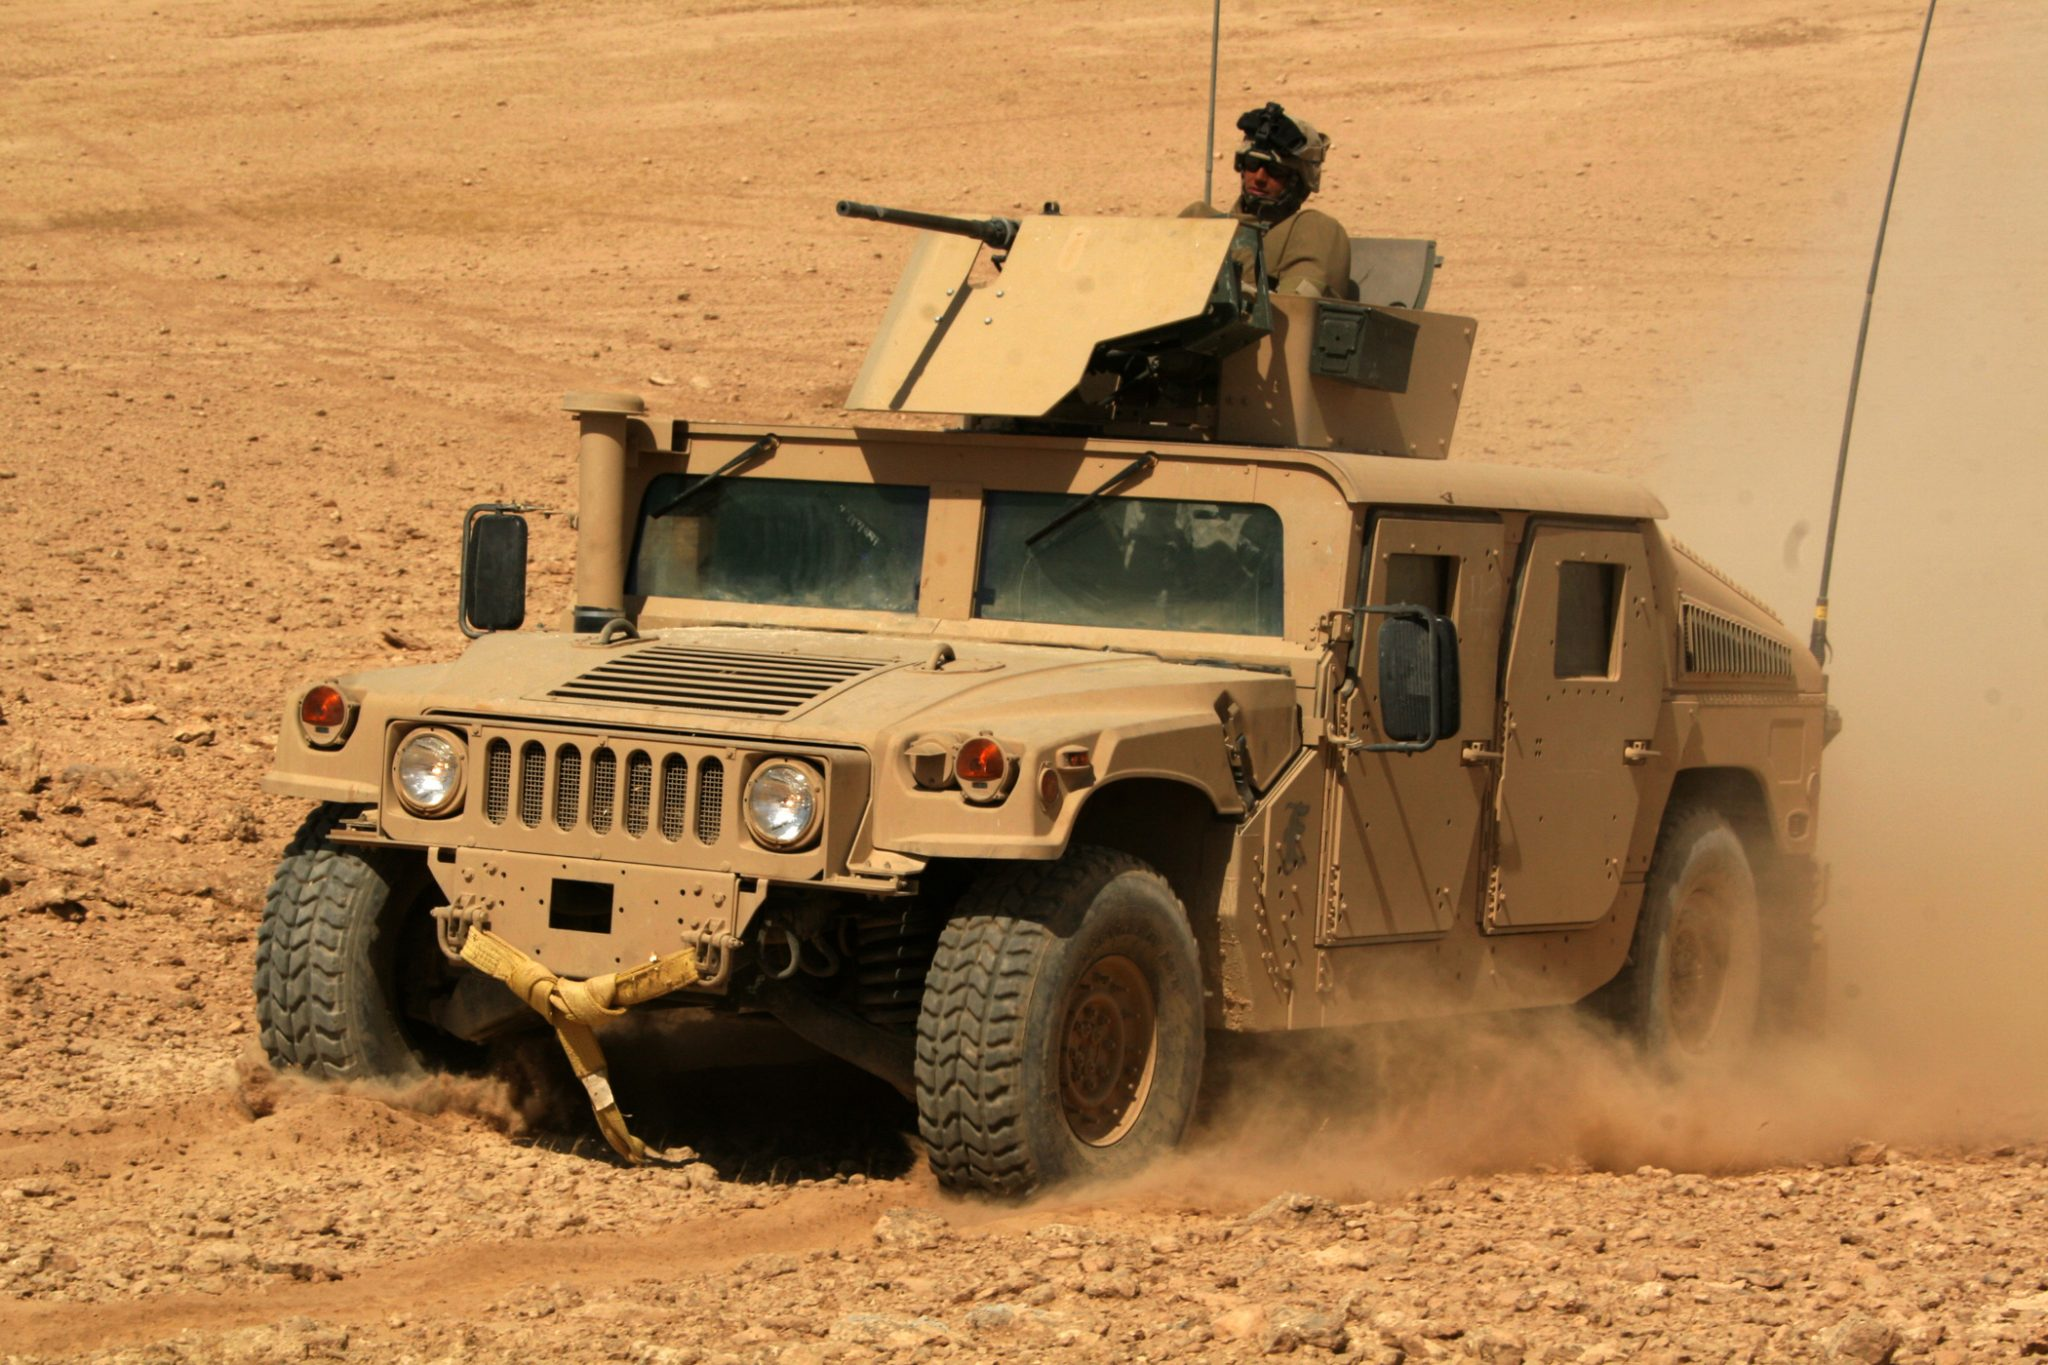 A Humvee (High Mobility Multipurpose Wheeled Vehicle) truck as repaired by 3D printing at MWSS-372. Photo via U.S. Marine Corps